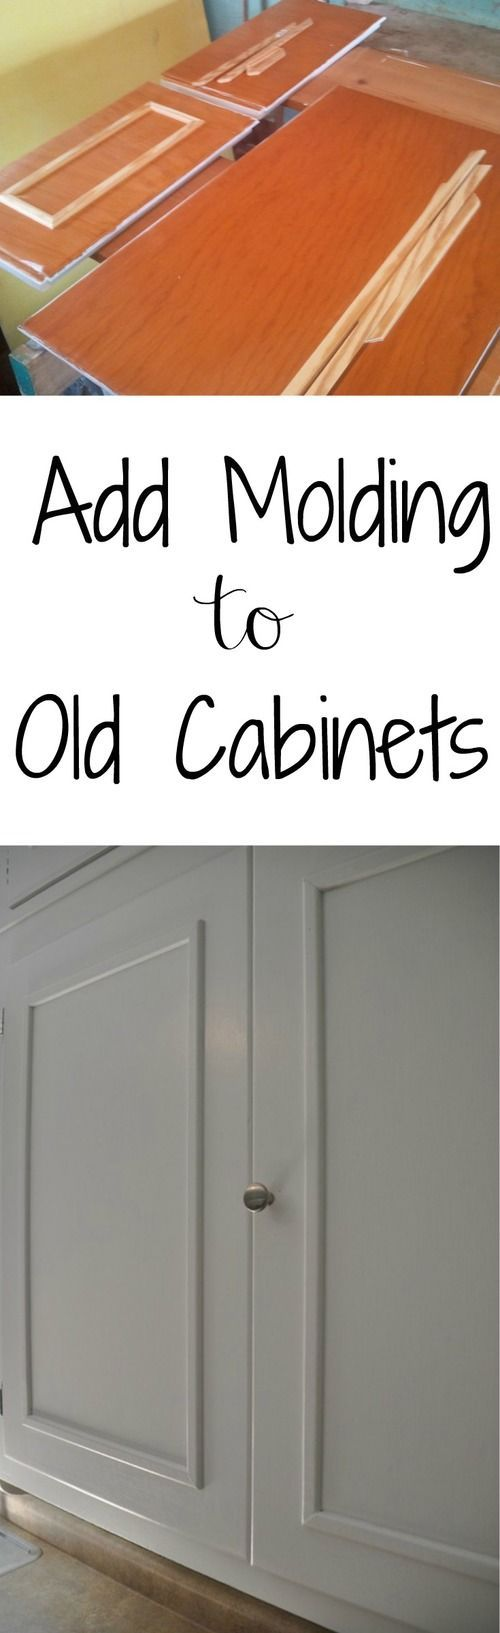 How to Add Cabinet Molding.  Great solution for those old cabinets!